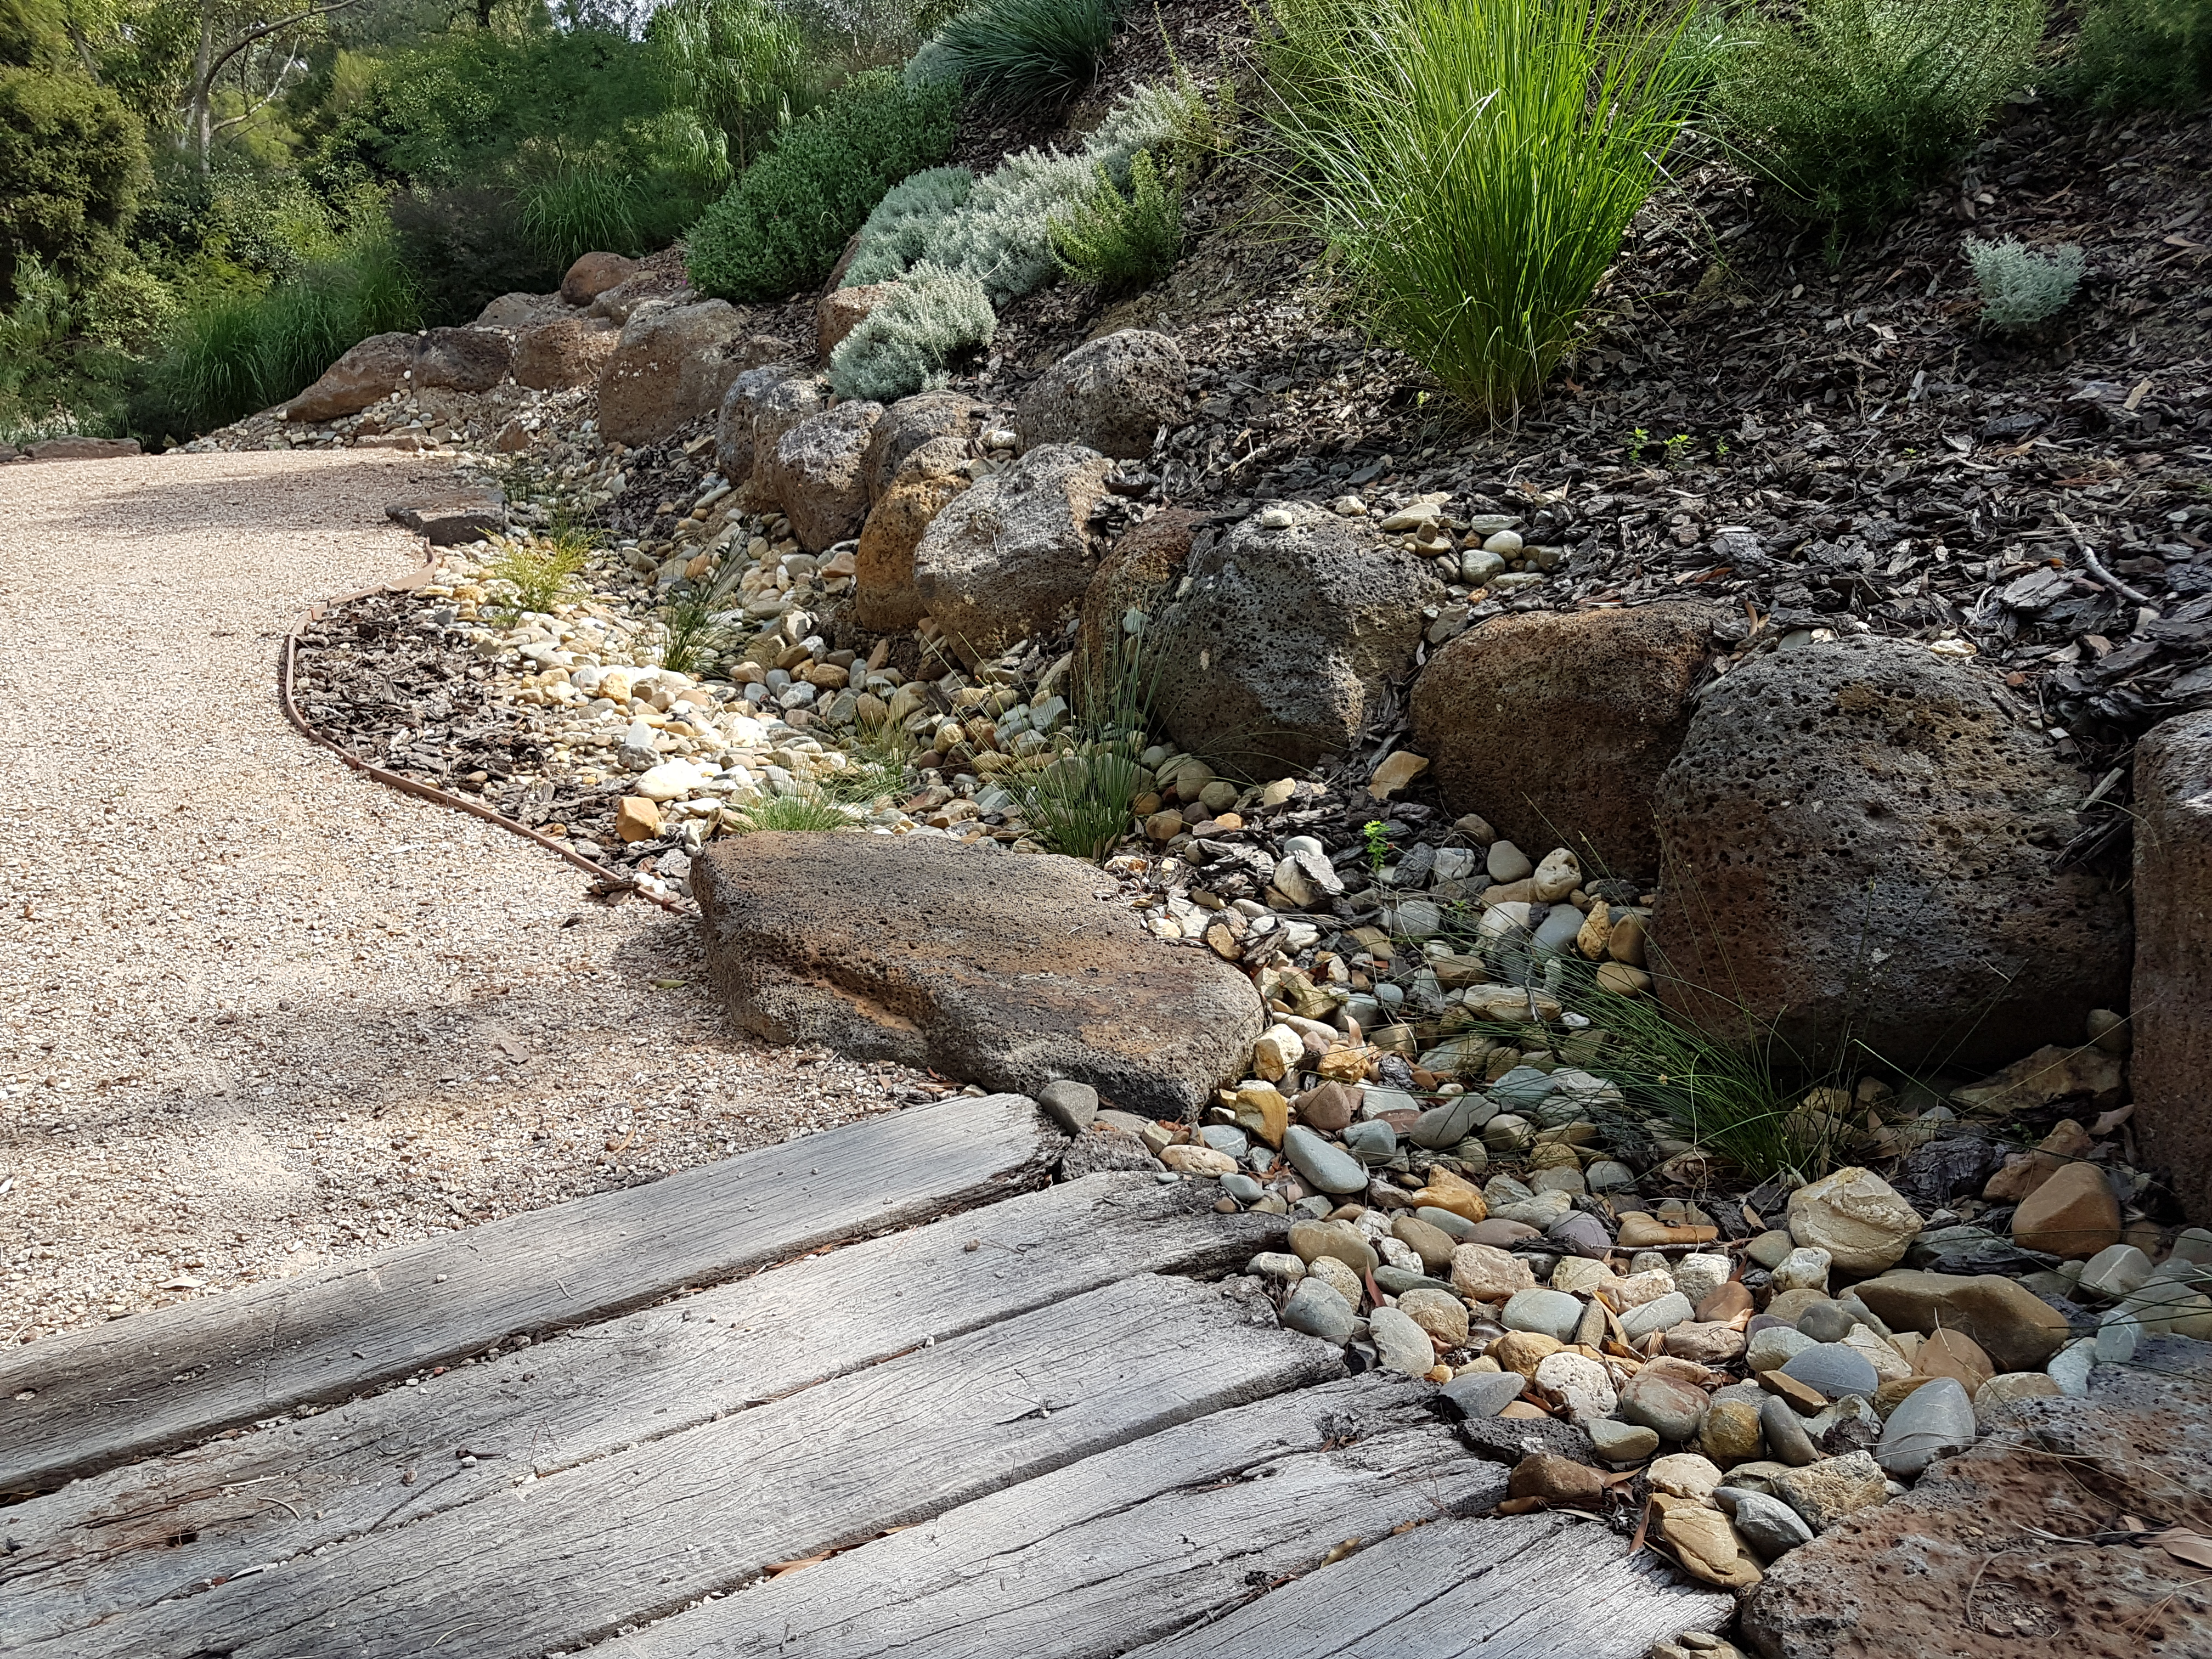 timber bridge is for drainage, Rocks for reatining, compacted toppings.